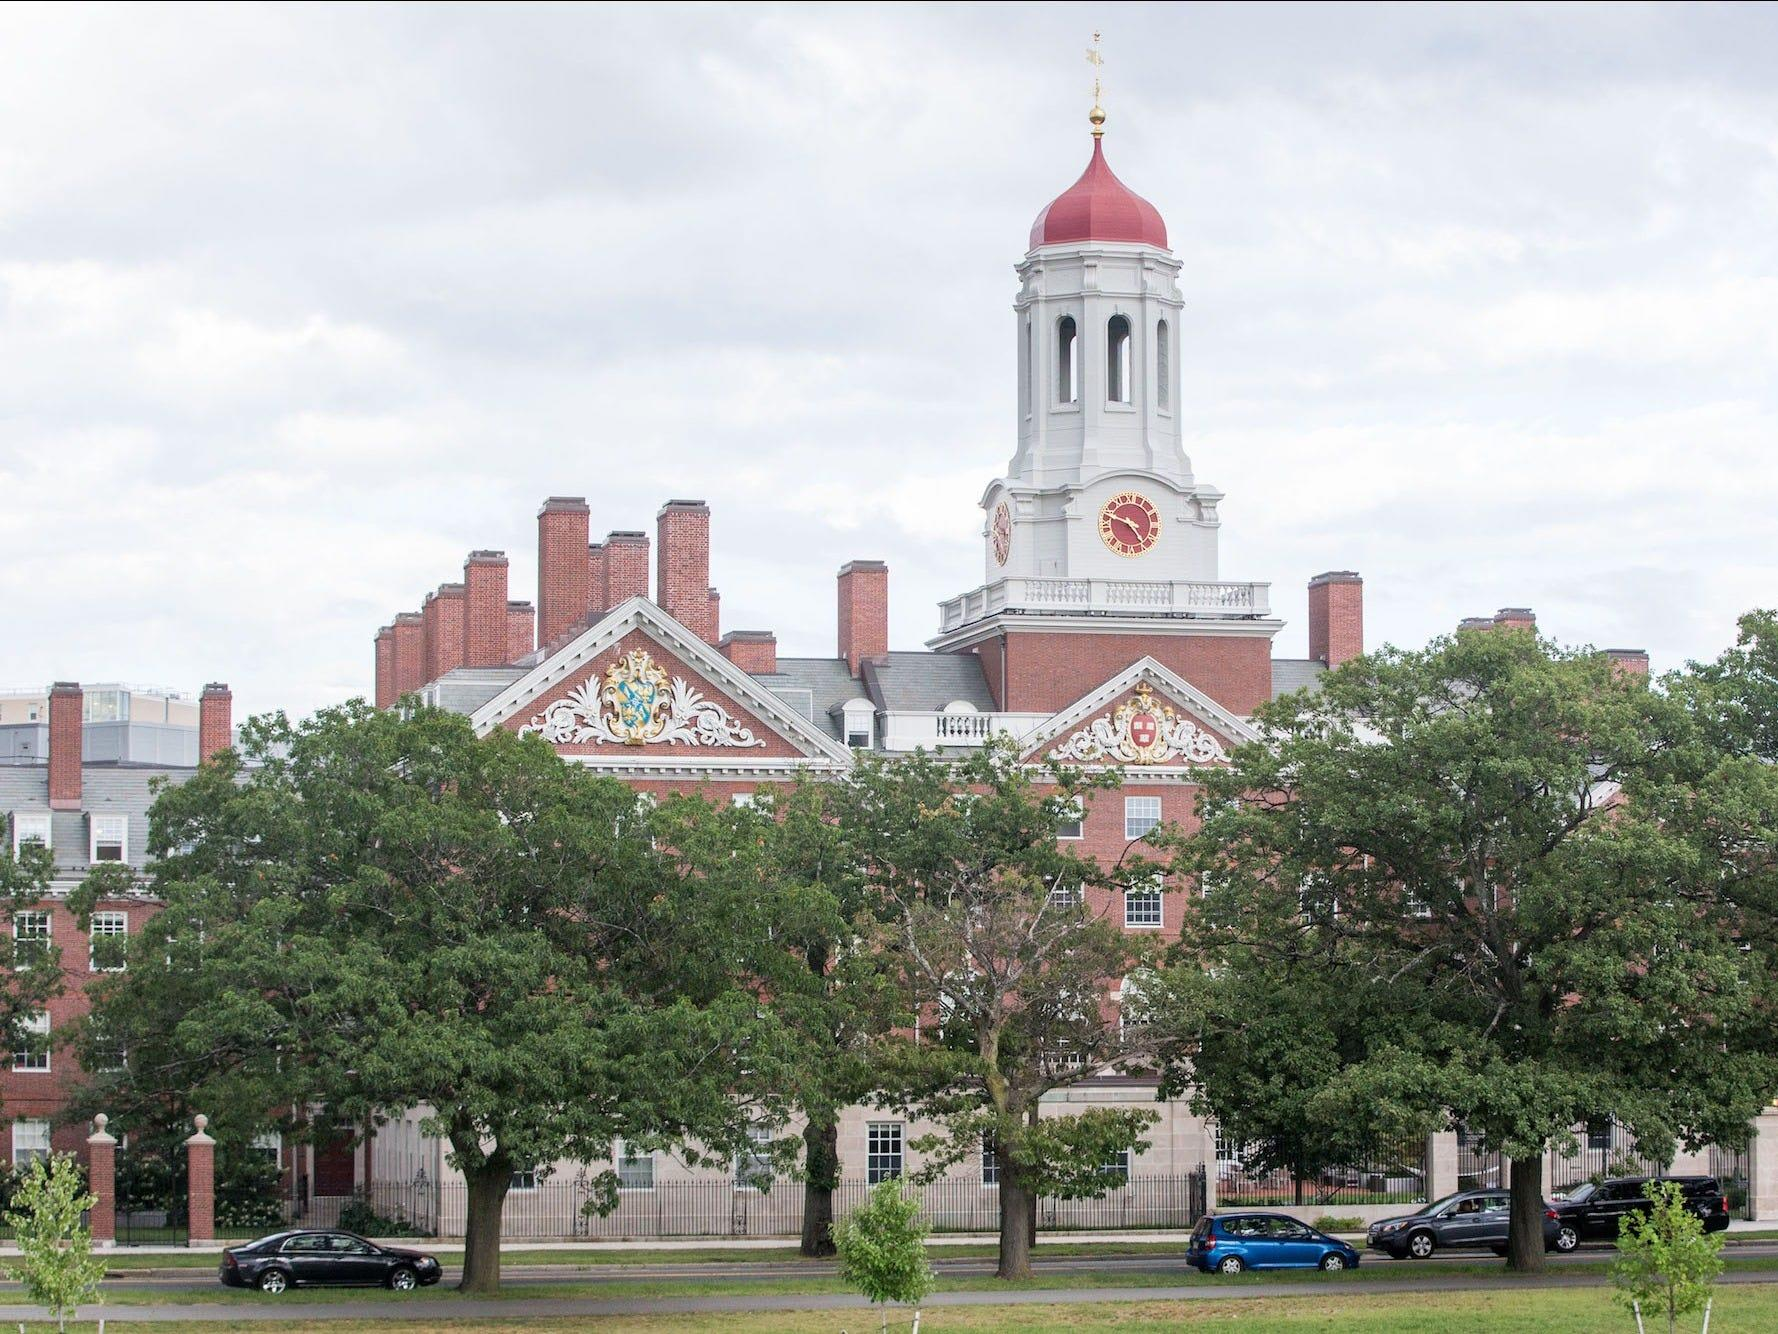 A wealthy businessman was charged with bribery over alleged payments of $1.5 million to get his sons into Harvard